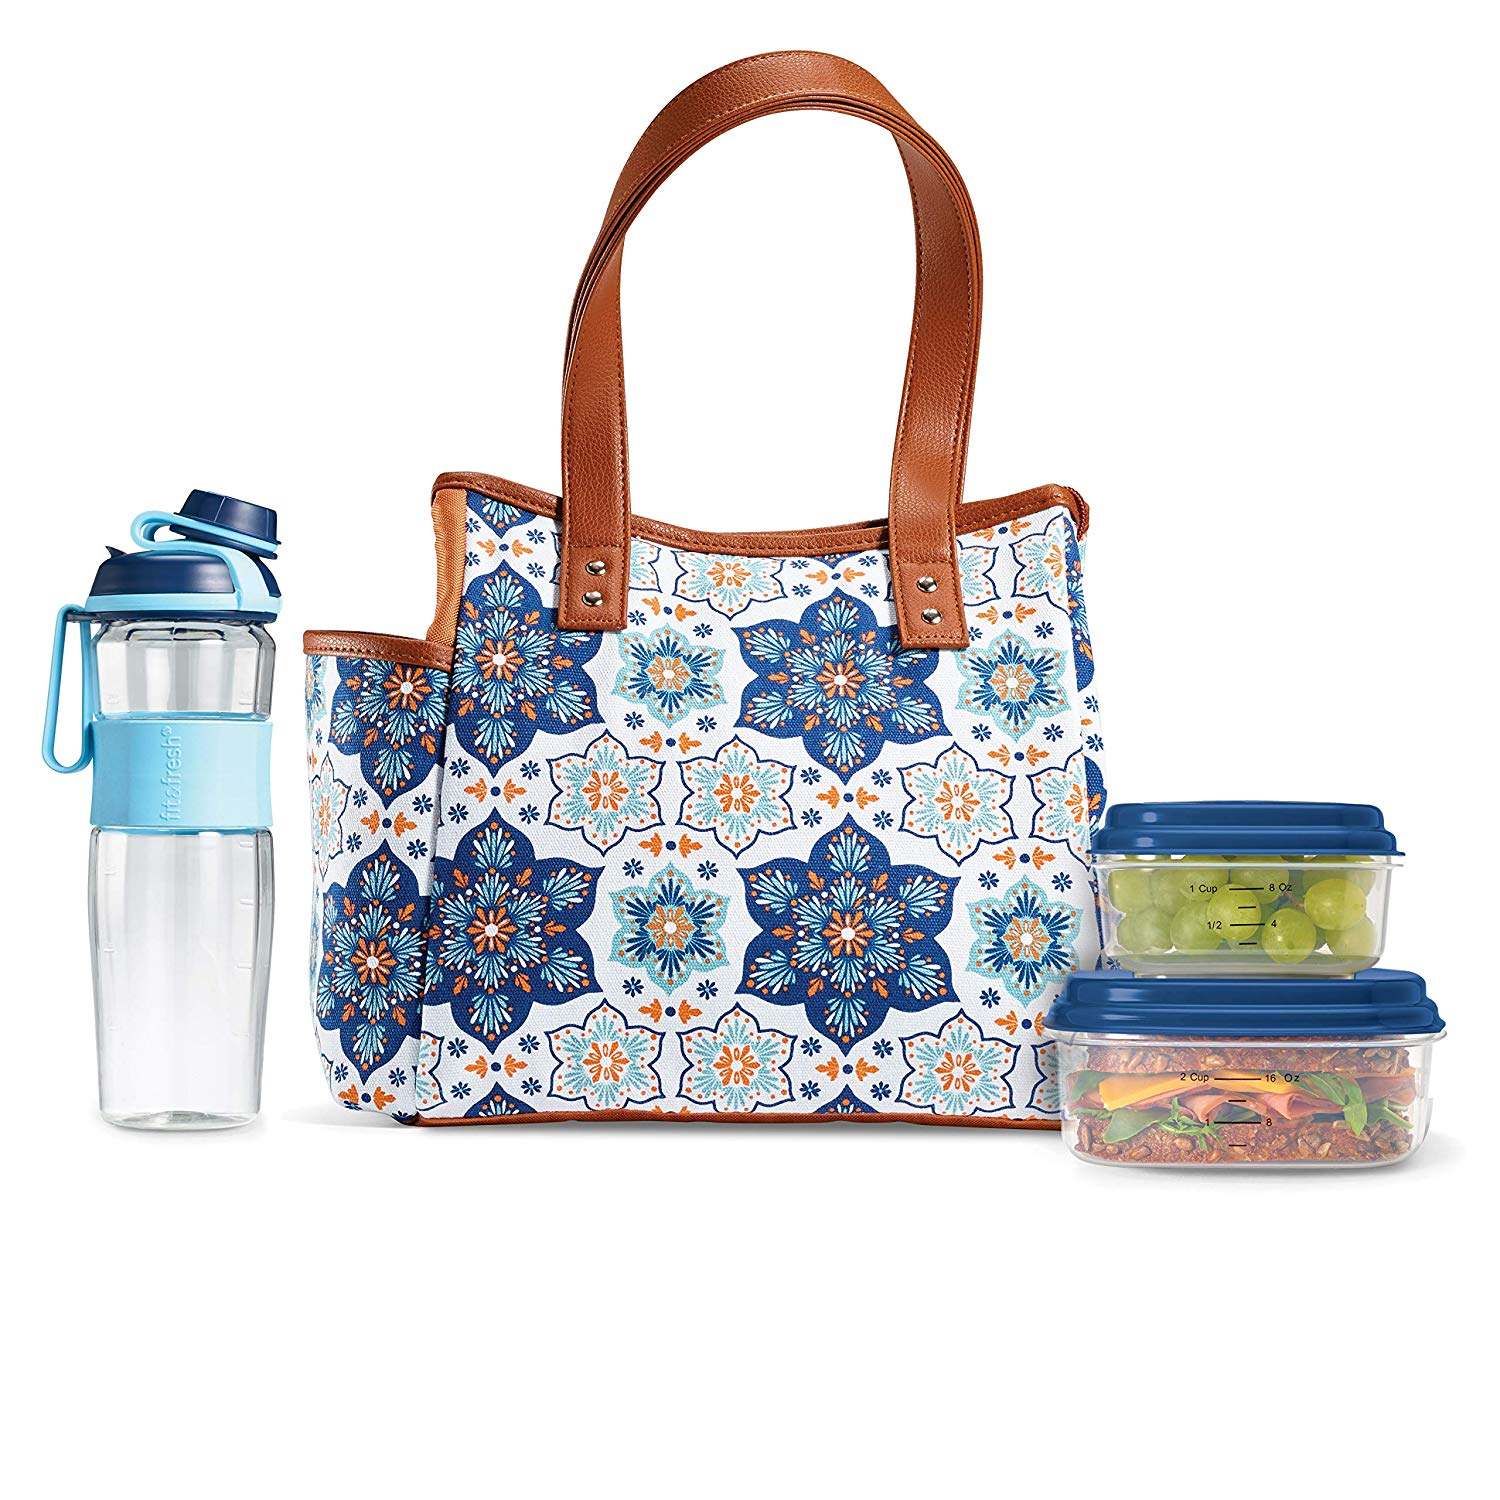 f8bdfc02a539 Fit & Fresh | Westerly Insulated Lunch Bag, Containers & Water Bottle